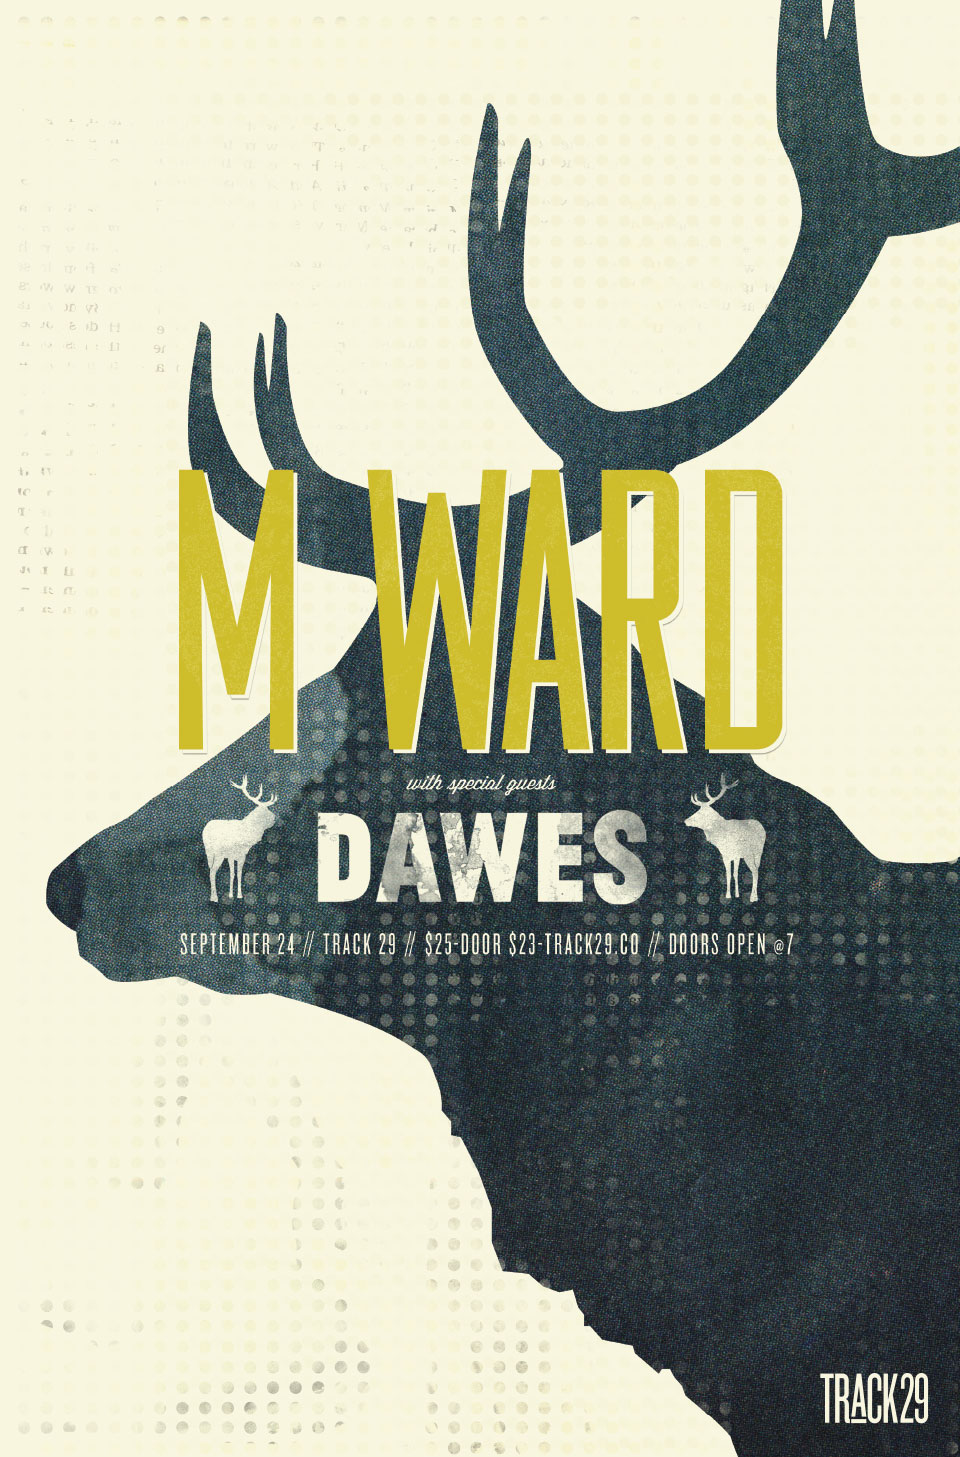 Tiny Giant - Track 29 - M. Ward and Dawes Poster